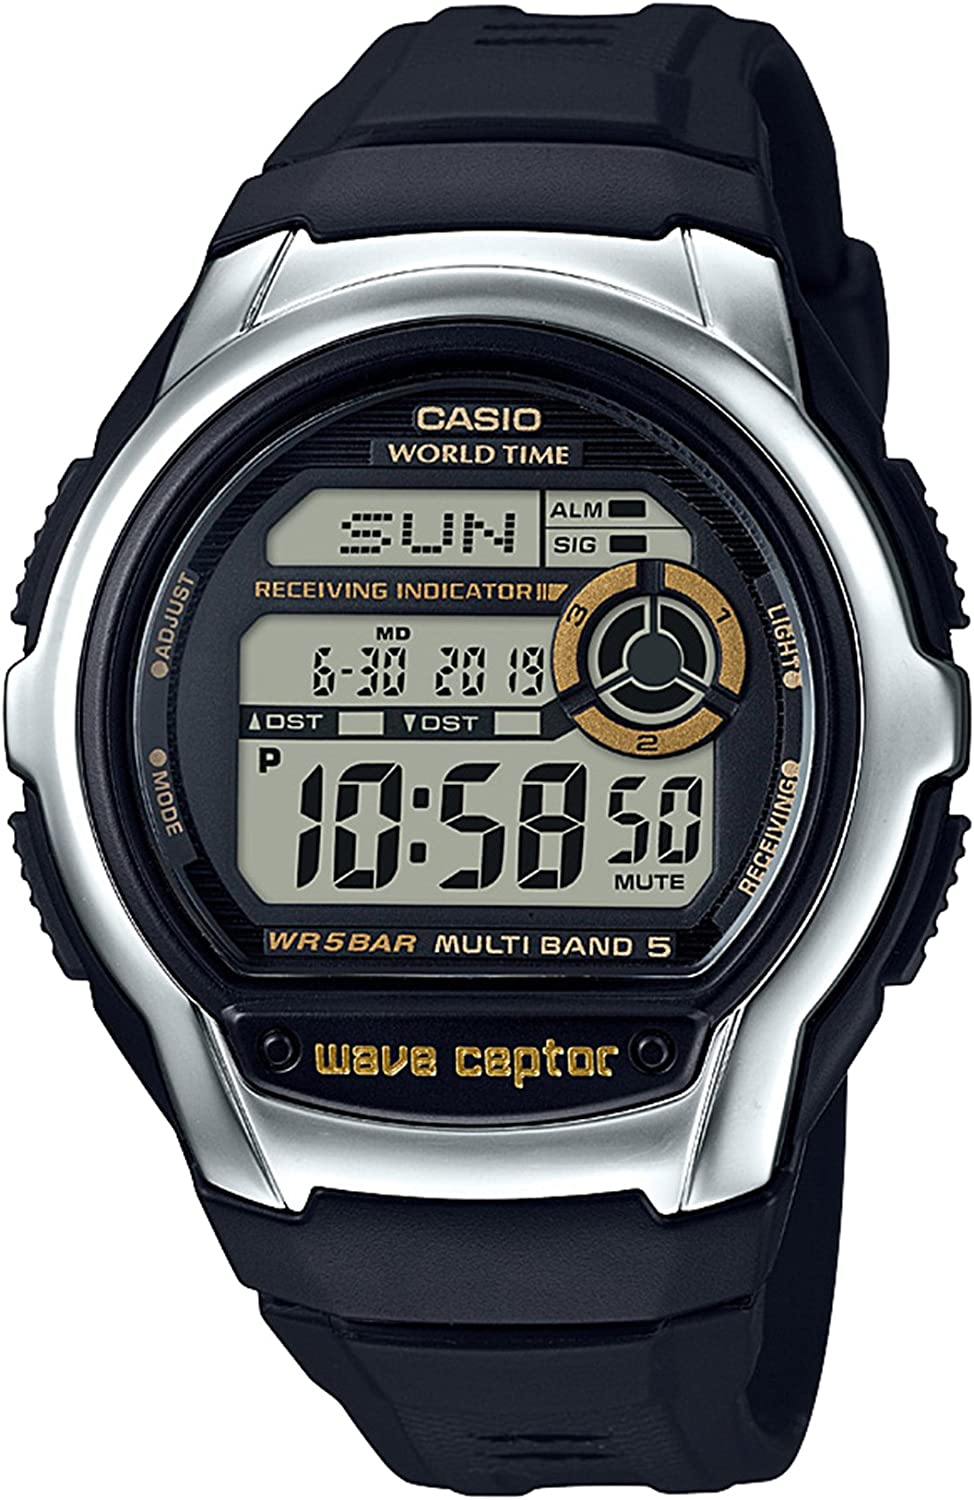 Casio Men s Wave Cepto Stainless Steel Quartz Watch with Resin Strap, Black, 22.4 Model WV-M60-9ACF